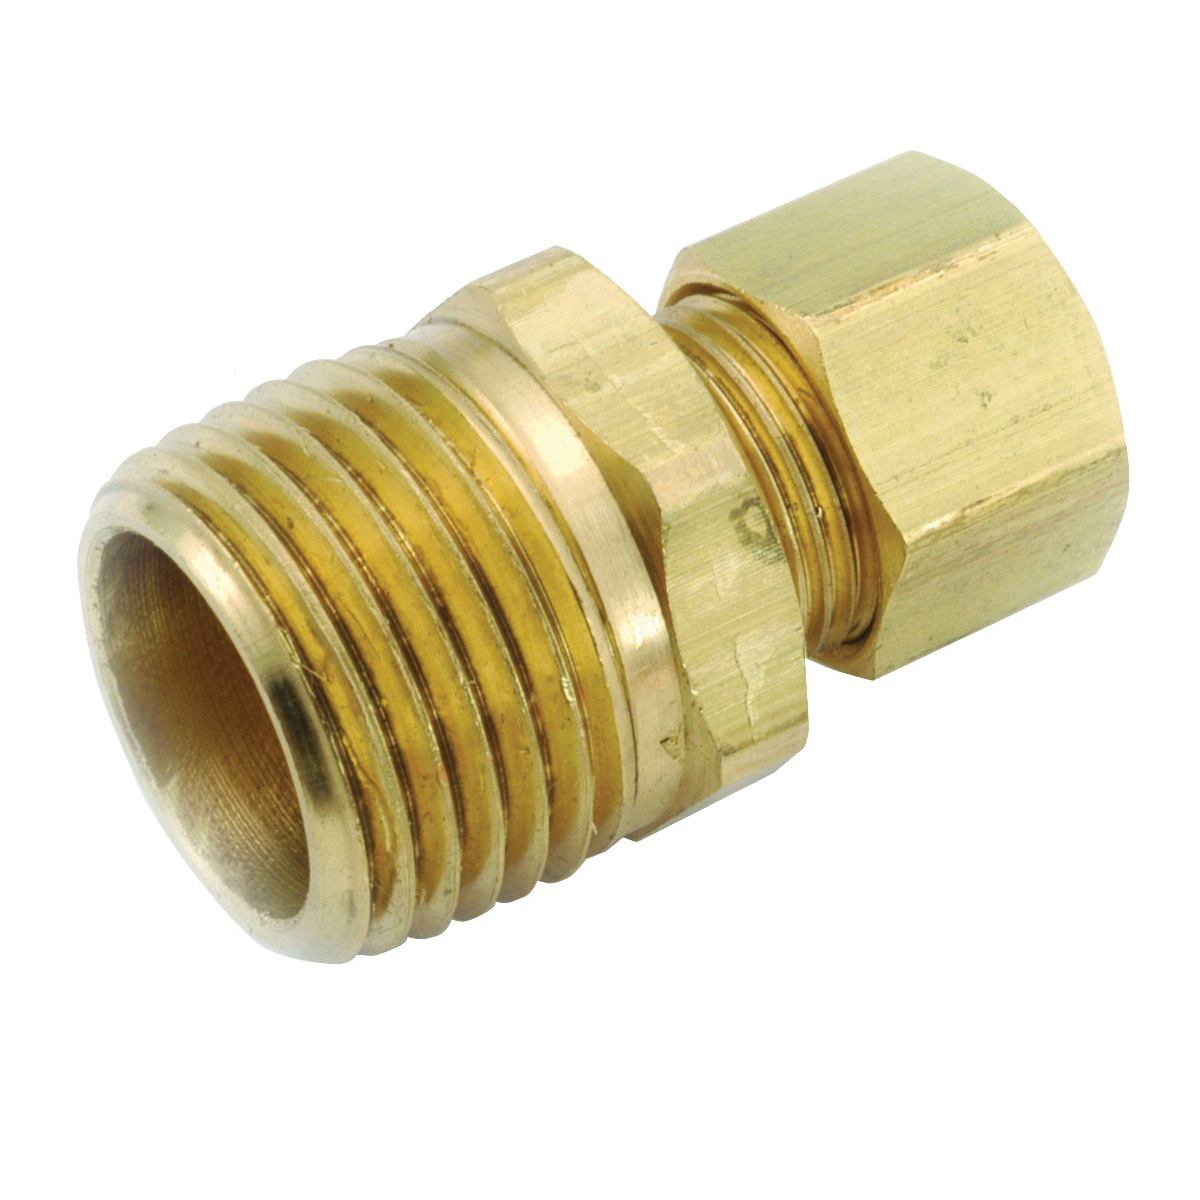 Picture of Anderson Metals 750068-0406 Connector, 1/4 in Compression, 3/8 in MPT